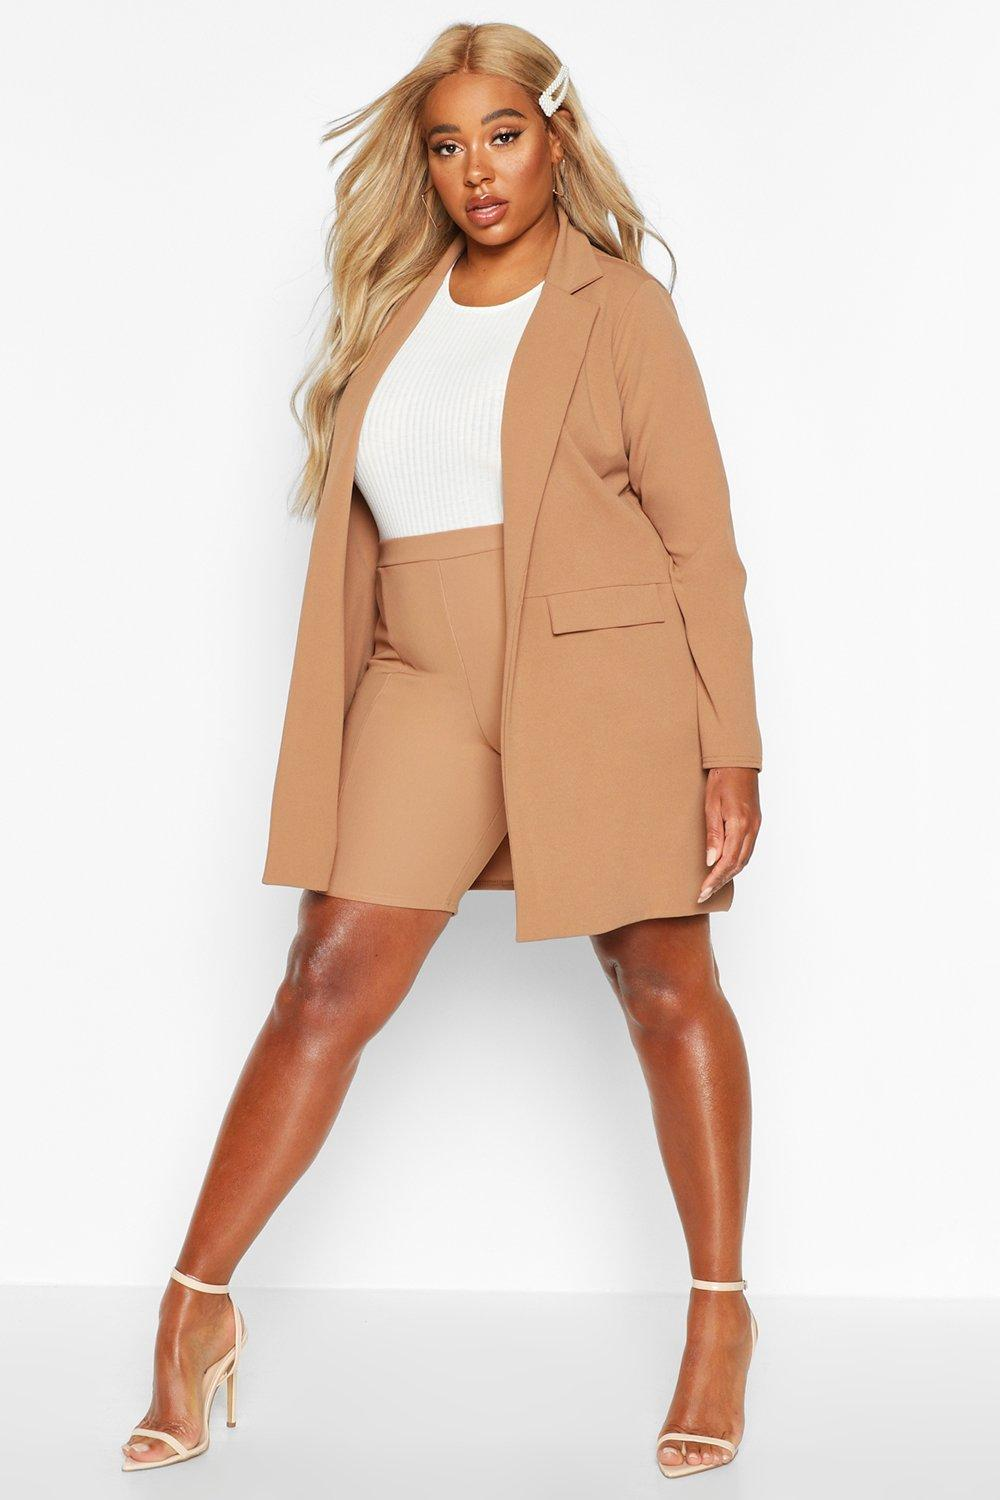 boohoo Womens Plus Pocket Detail Boyfriend Blazer - Beige - 20, Beige